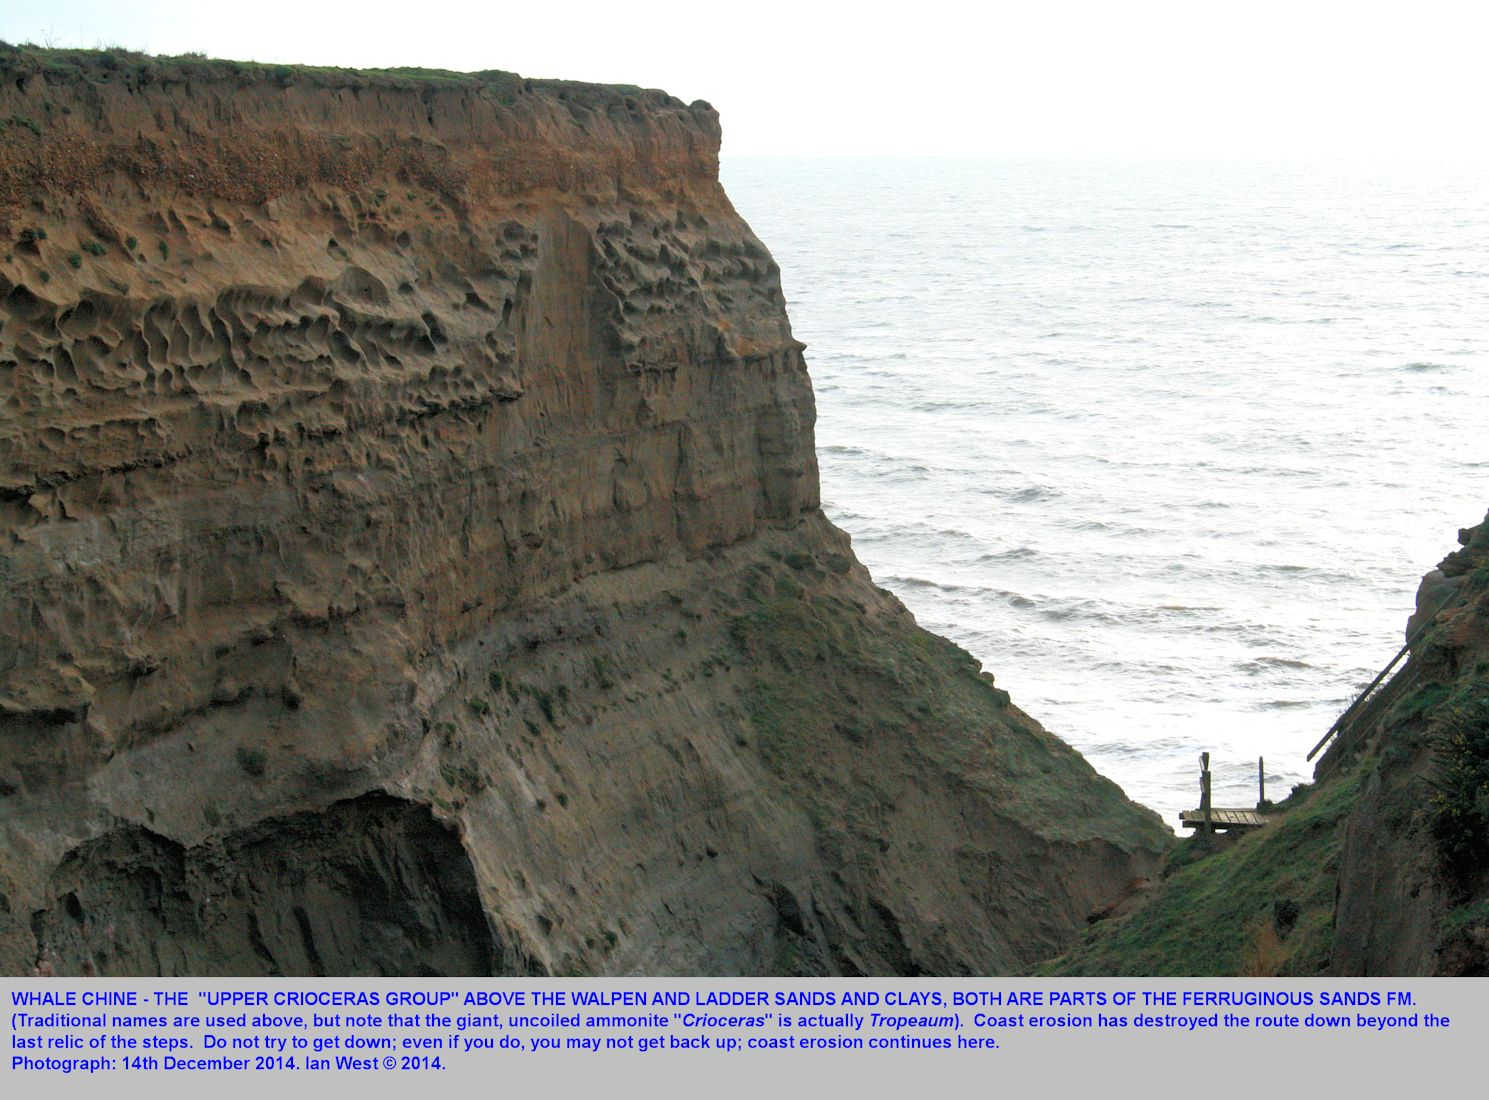 The eroded mouth of Whale Chine, southwest Isle of Wight, with no access to the beach, 14th December 2014